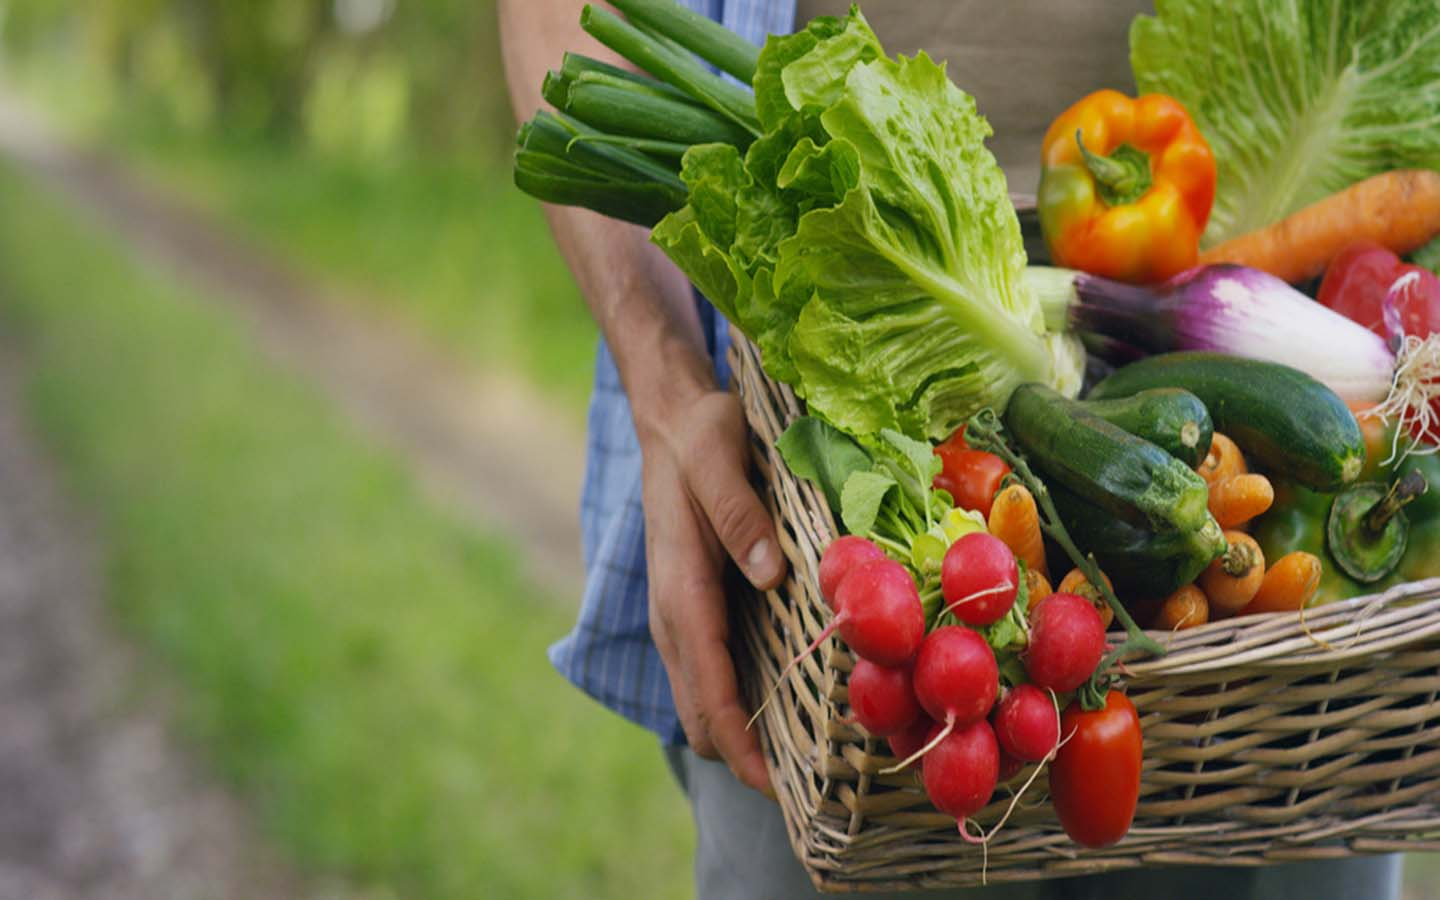 A basket full of fruits and vegetables